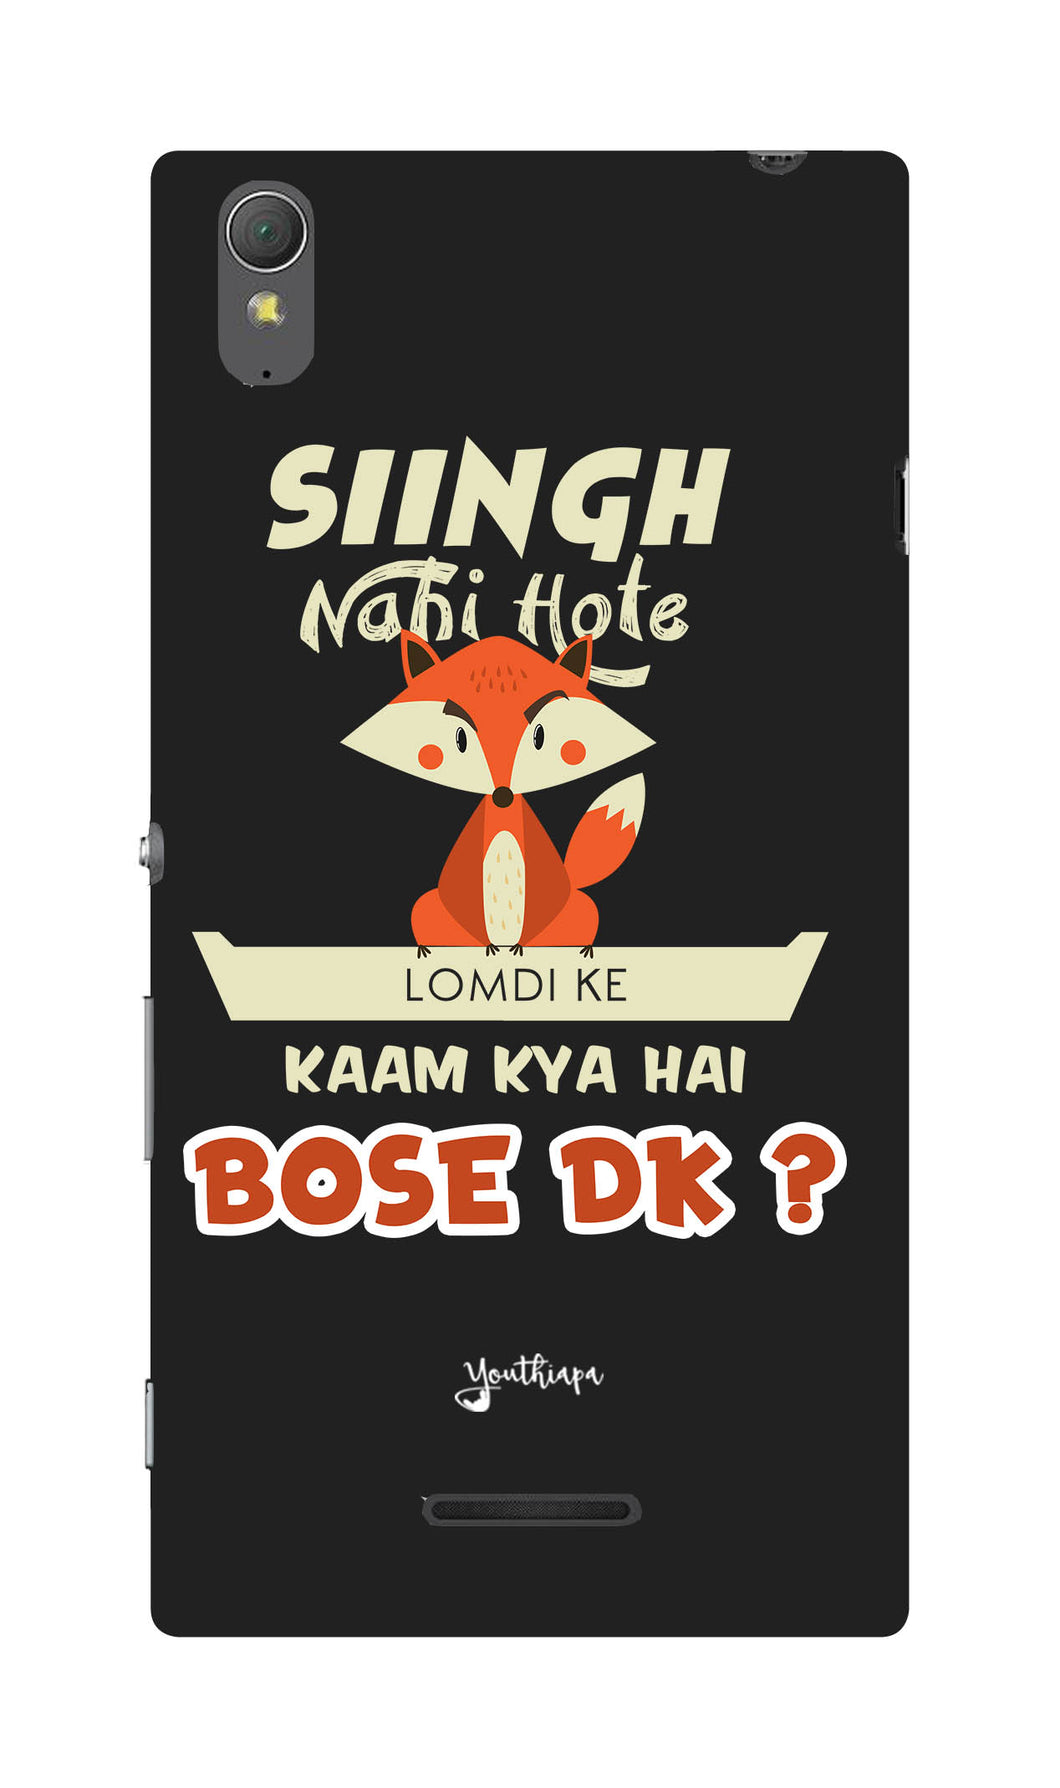 Singh Nahi Hote for Sony Xperia T3